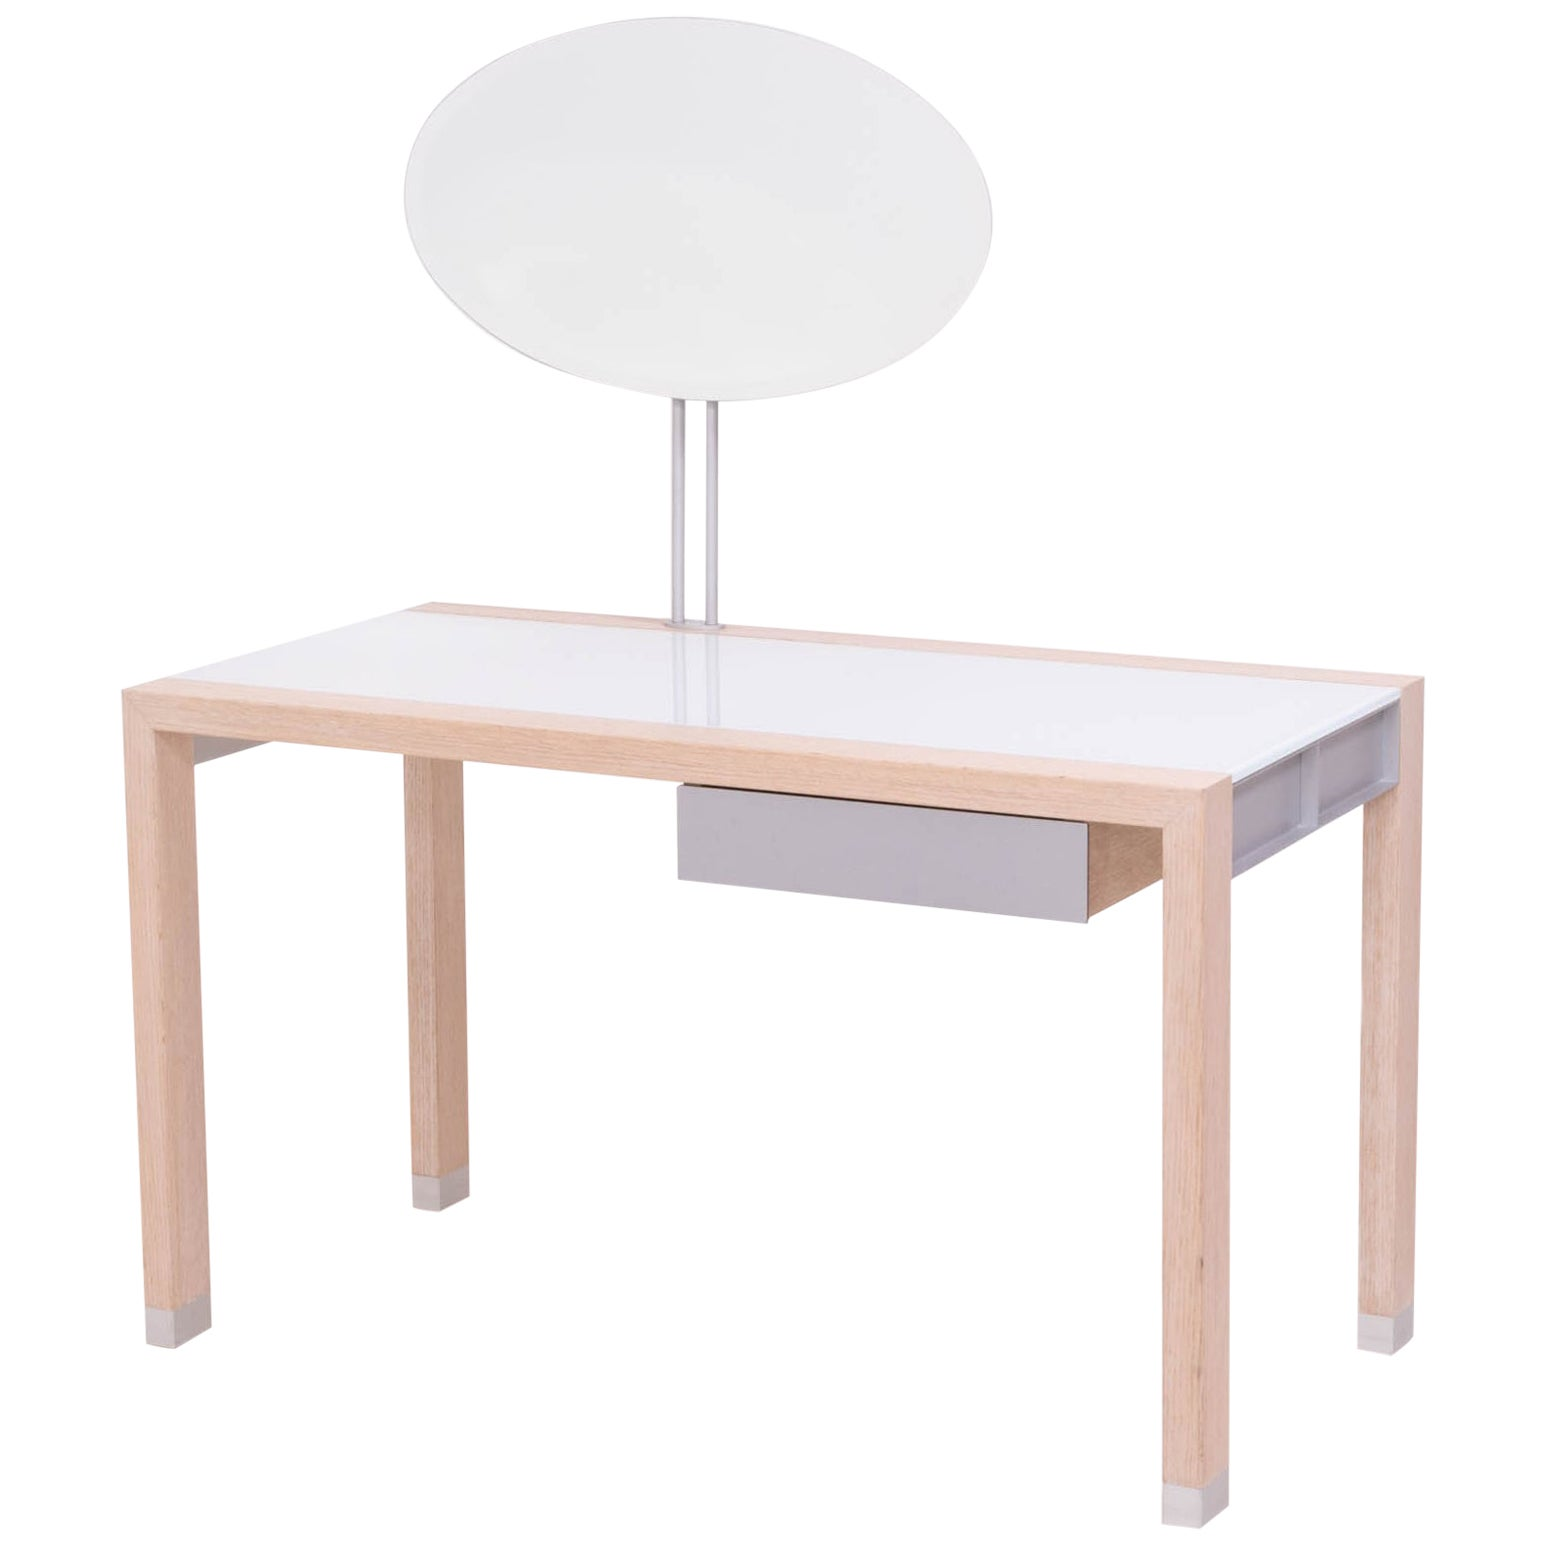 Lumeo Dressing Table by Peter Maly for Ligne Roset